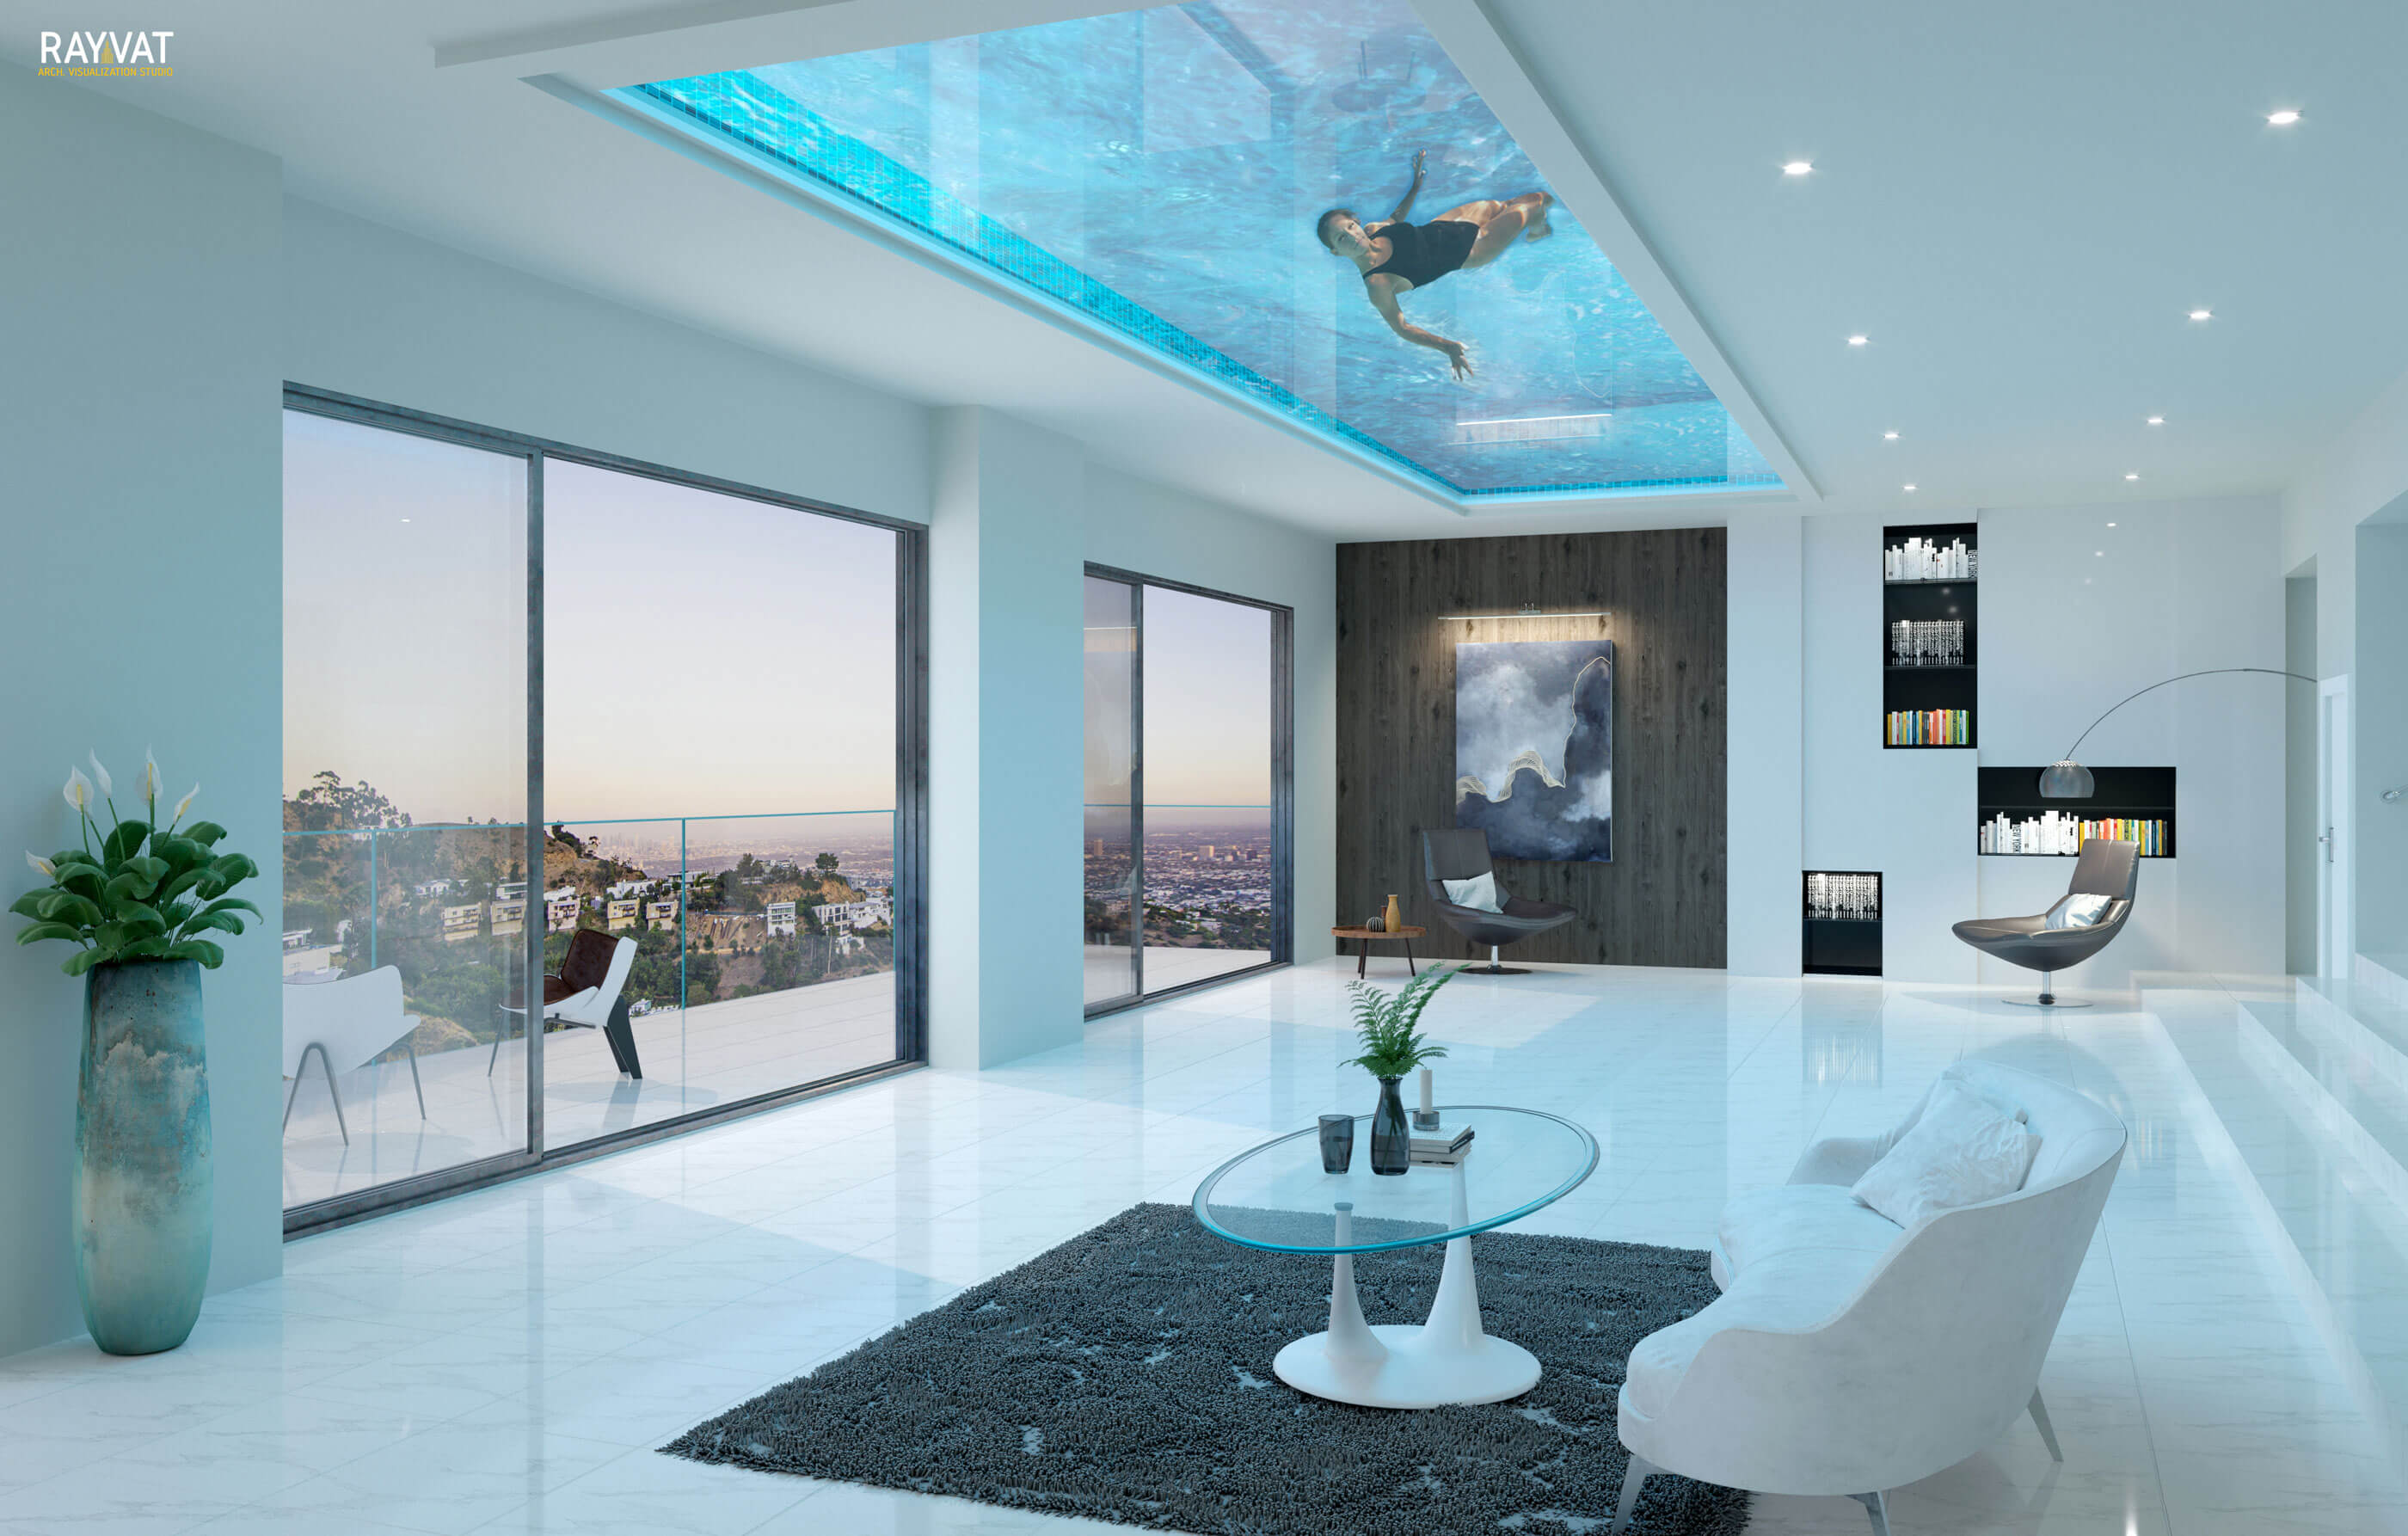 3D Rendering Services San Diego, California